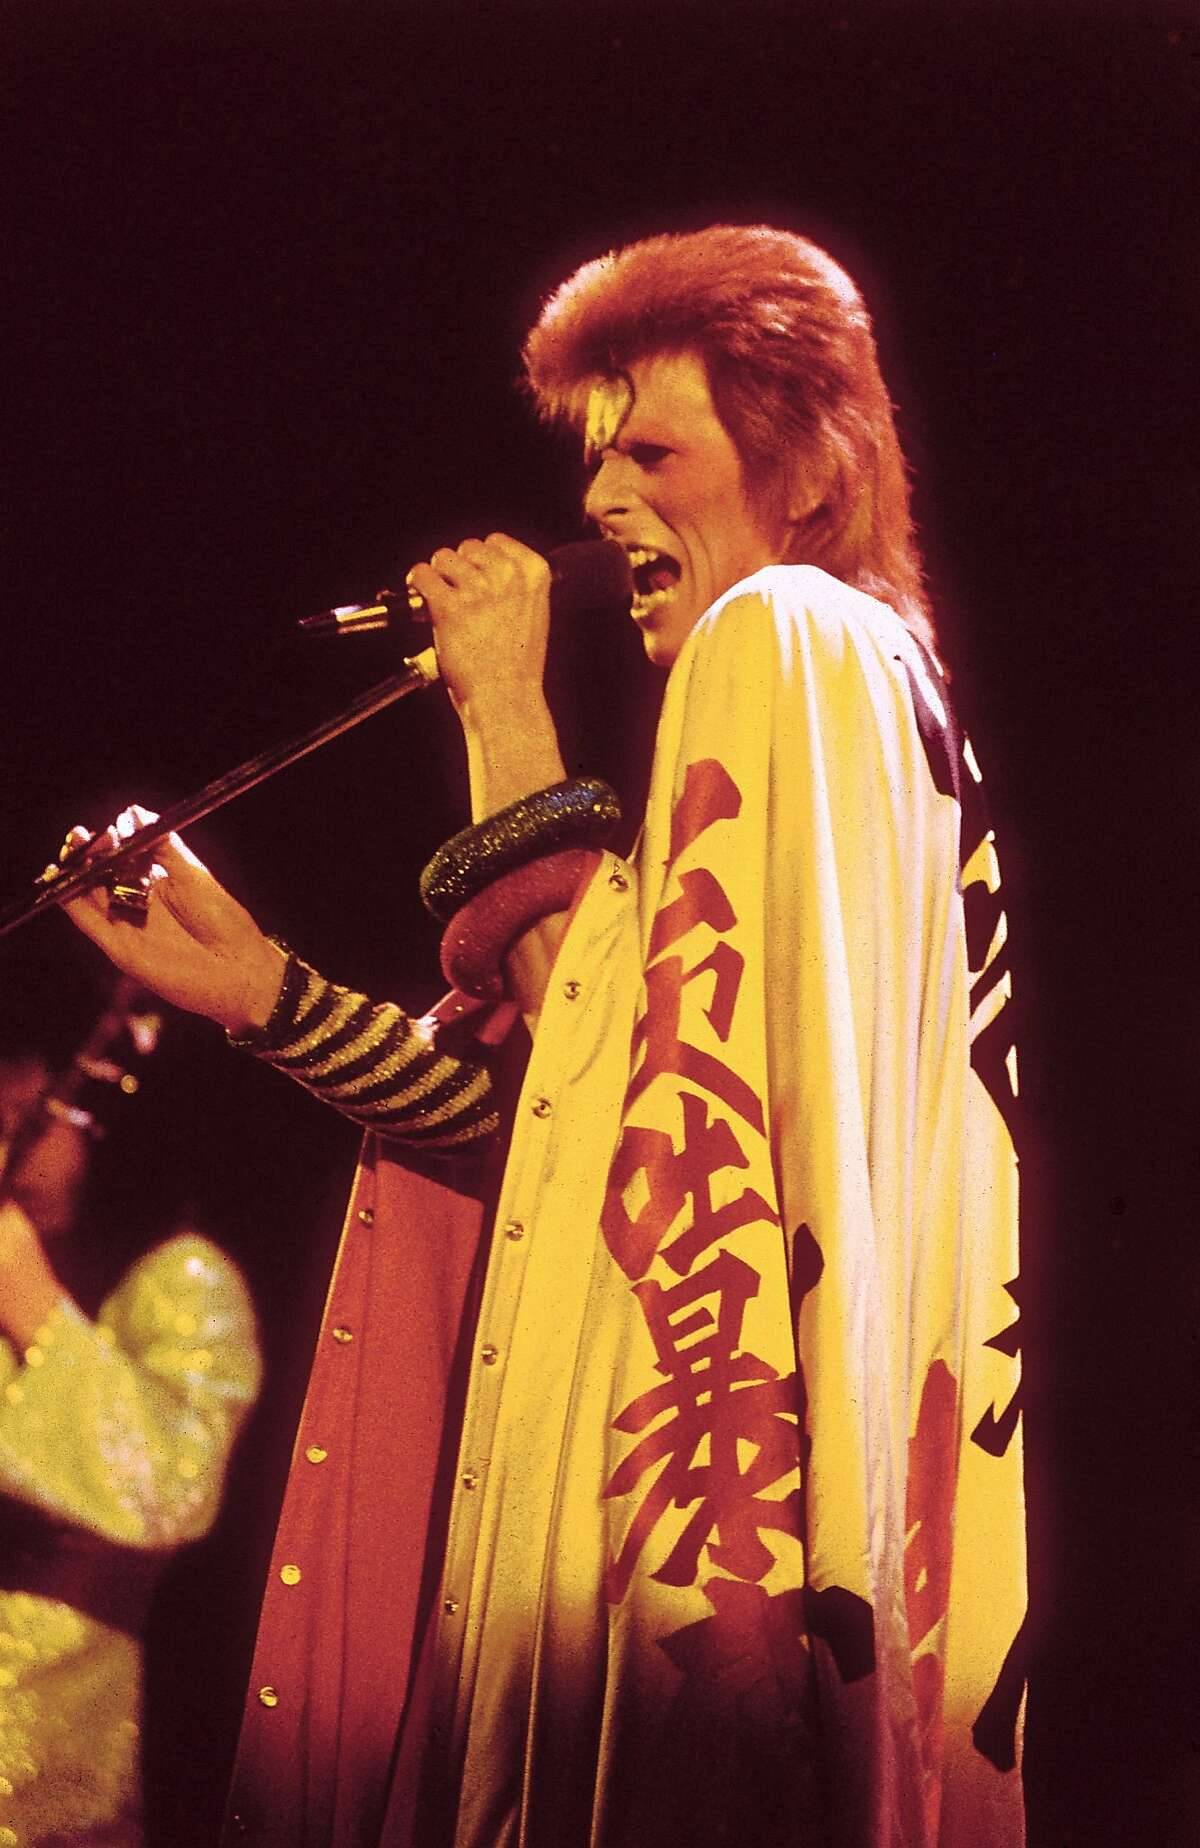 UNITED KINGDOM - JULY 03: HAMMERSMITH ODEON Photo of David BOWIE, performing live onstage at final Ziggy Stardust concert (Photo by Debi Doss/Redferns)